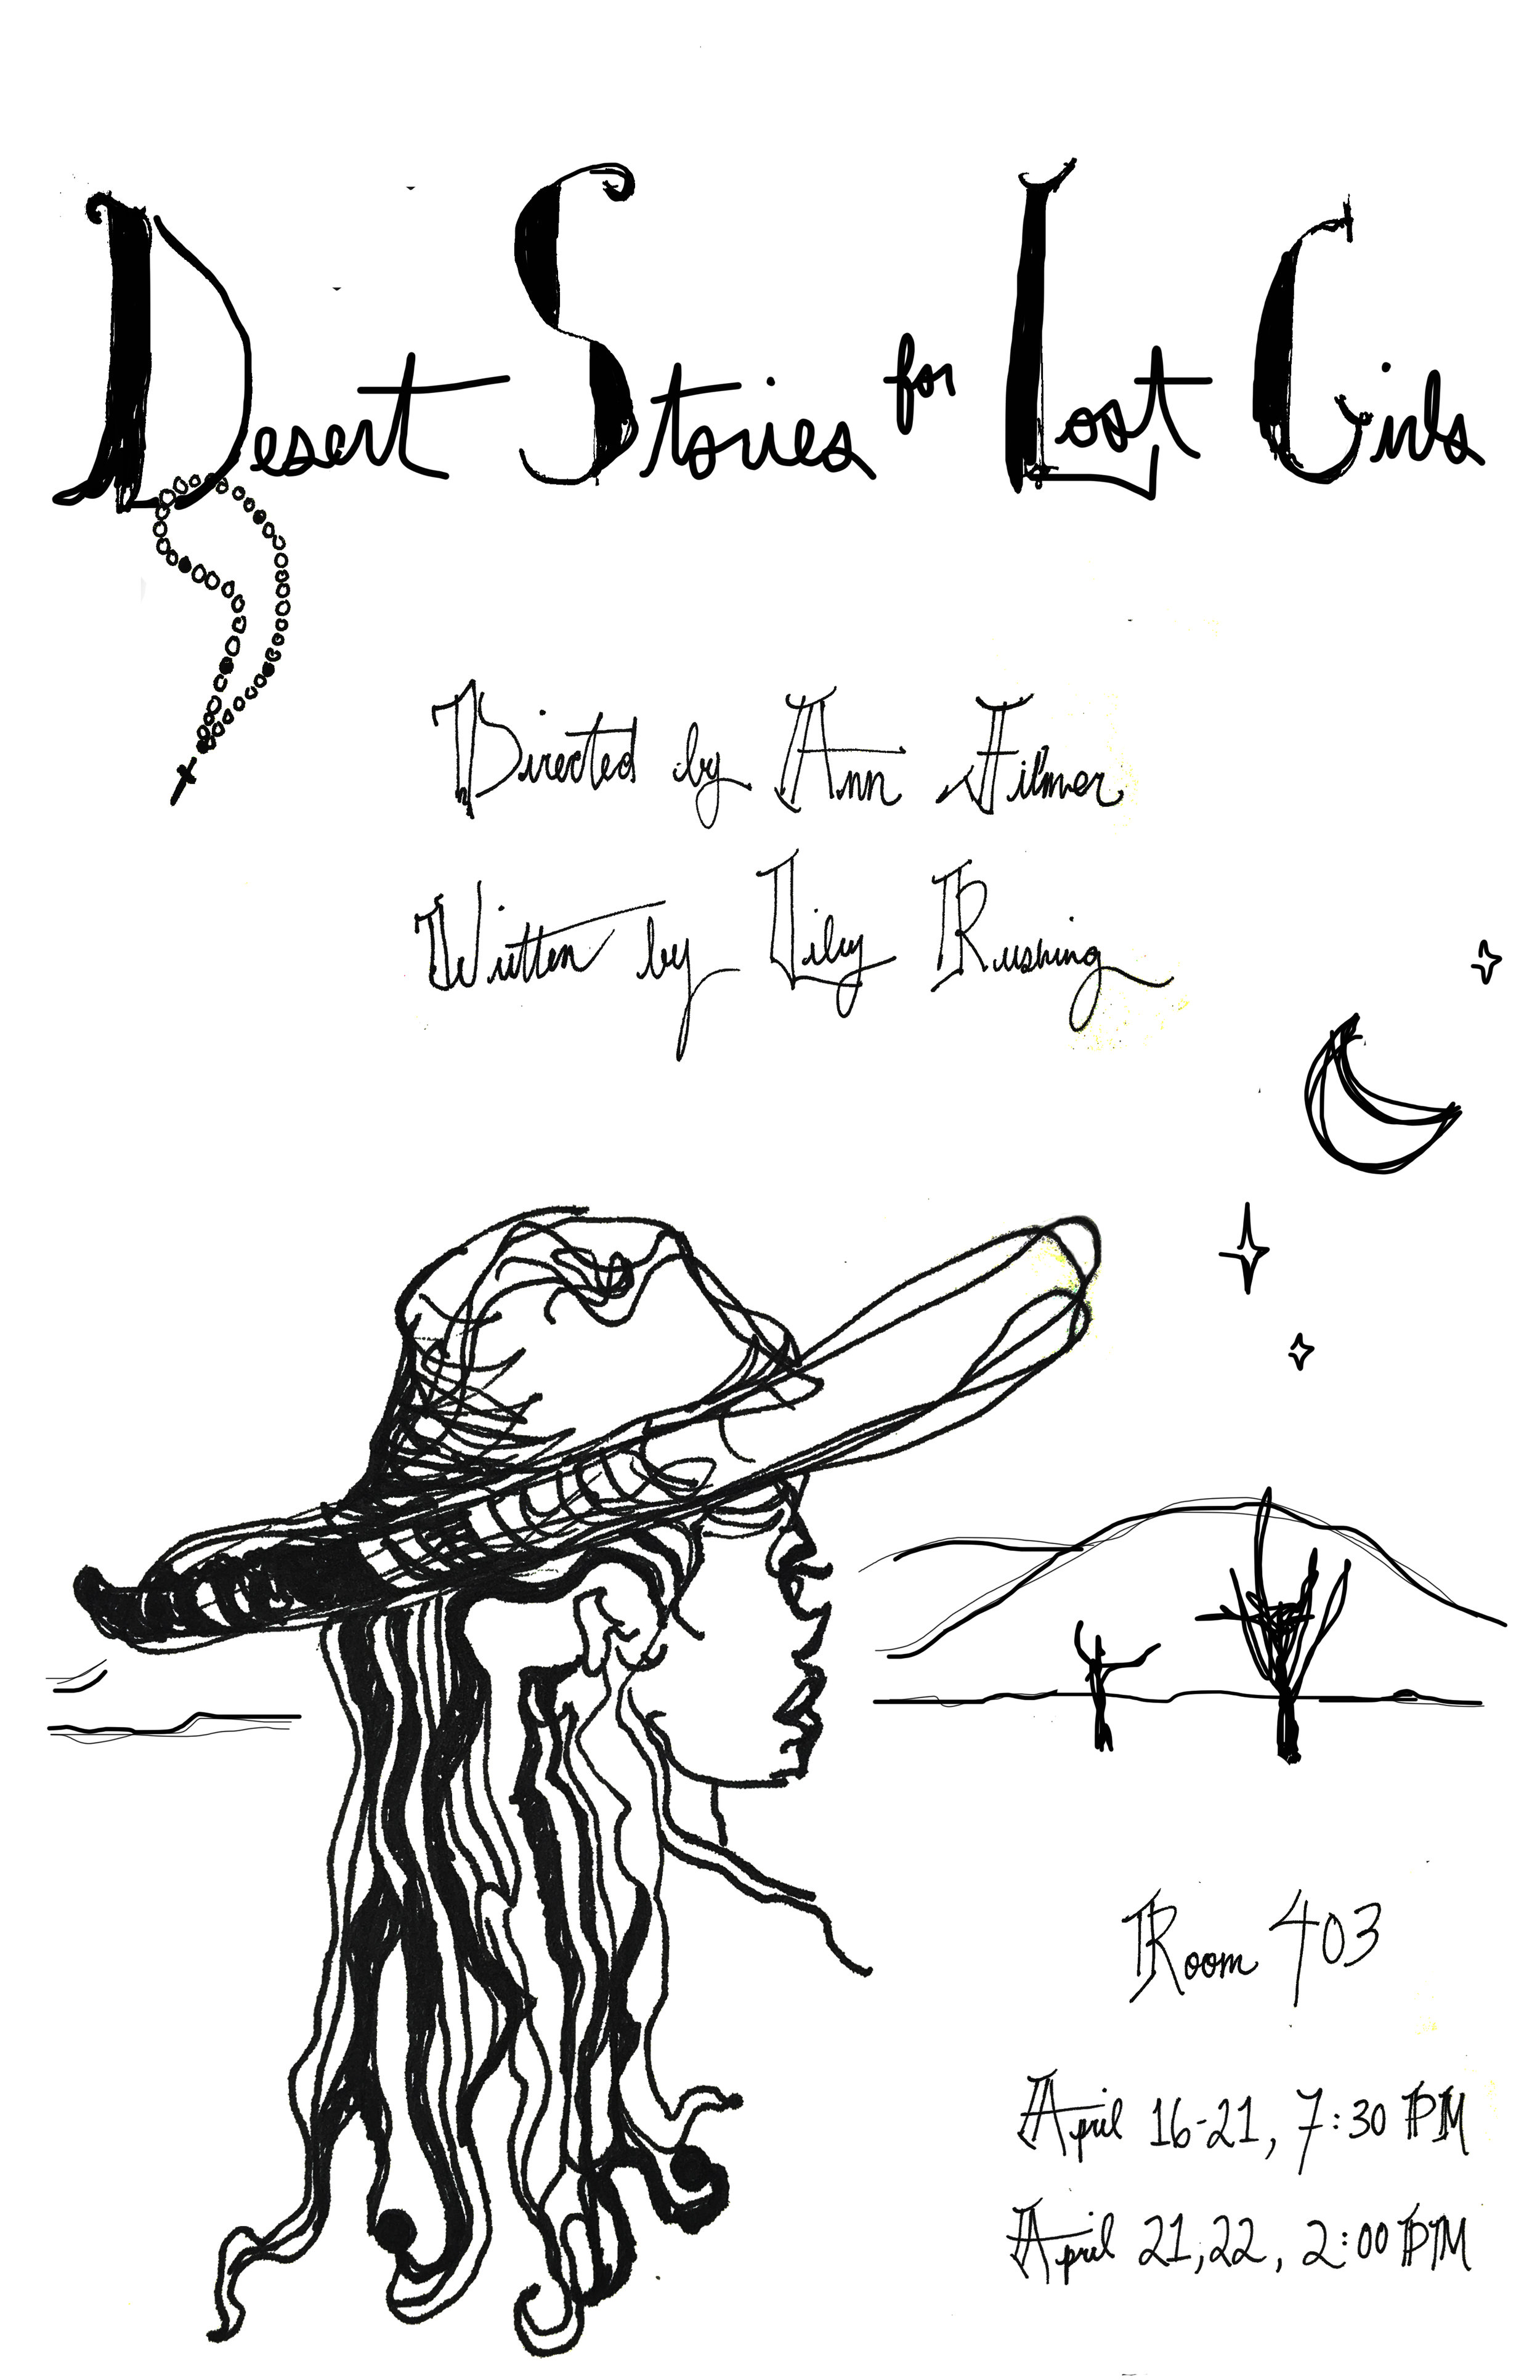 Poster for my play  Desert Stories for Lost Girls  designed by Eva Minh-Chau Liebovitz.